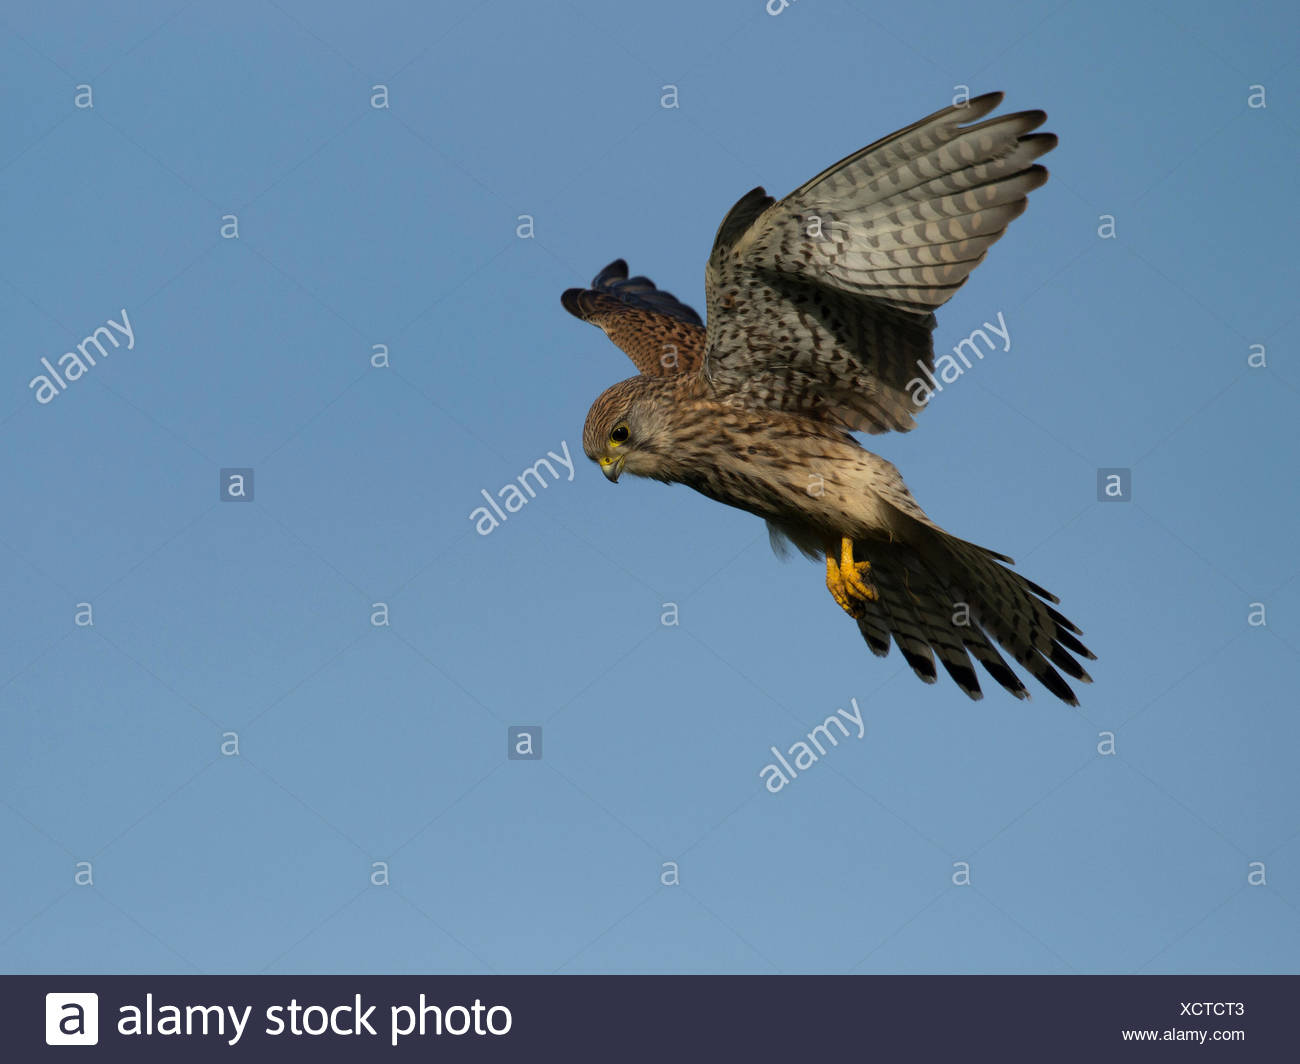 common kestrel hovering, falco tinnunculus, germany, europe - Stock Image